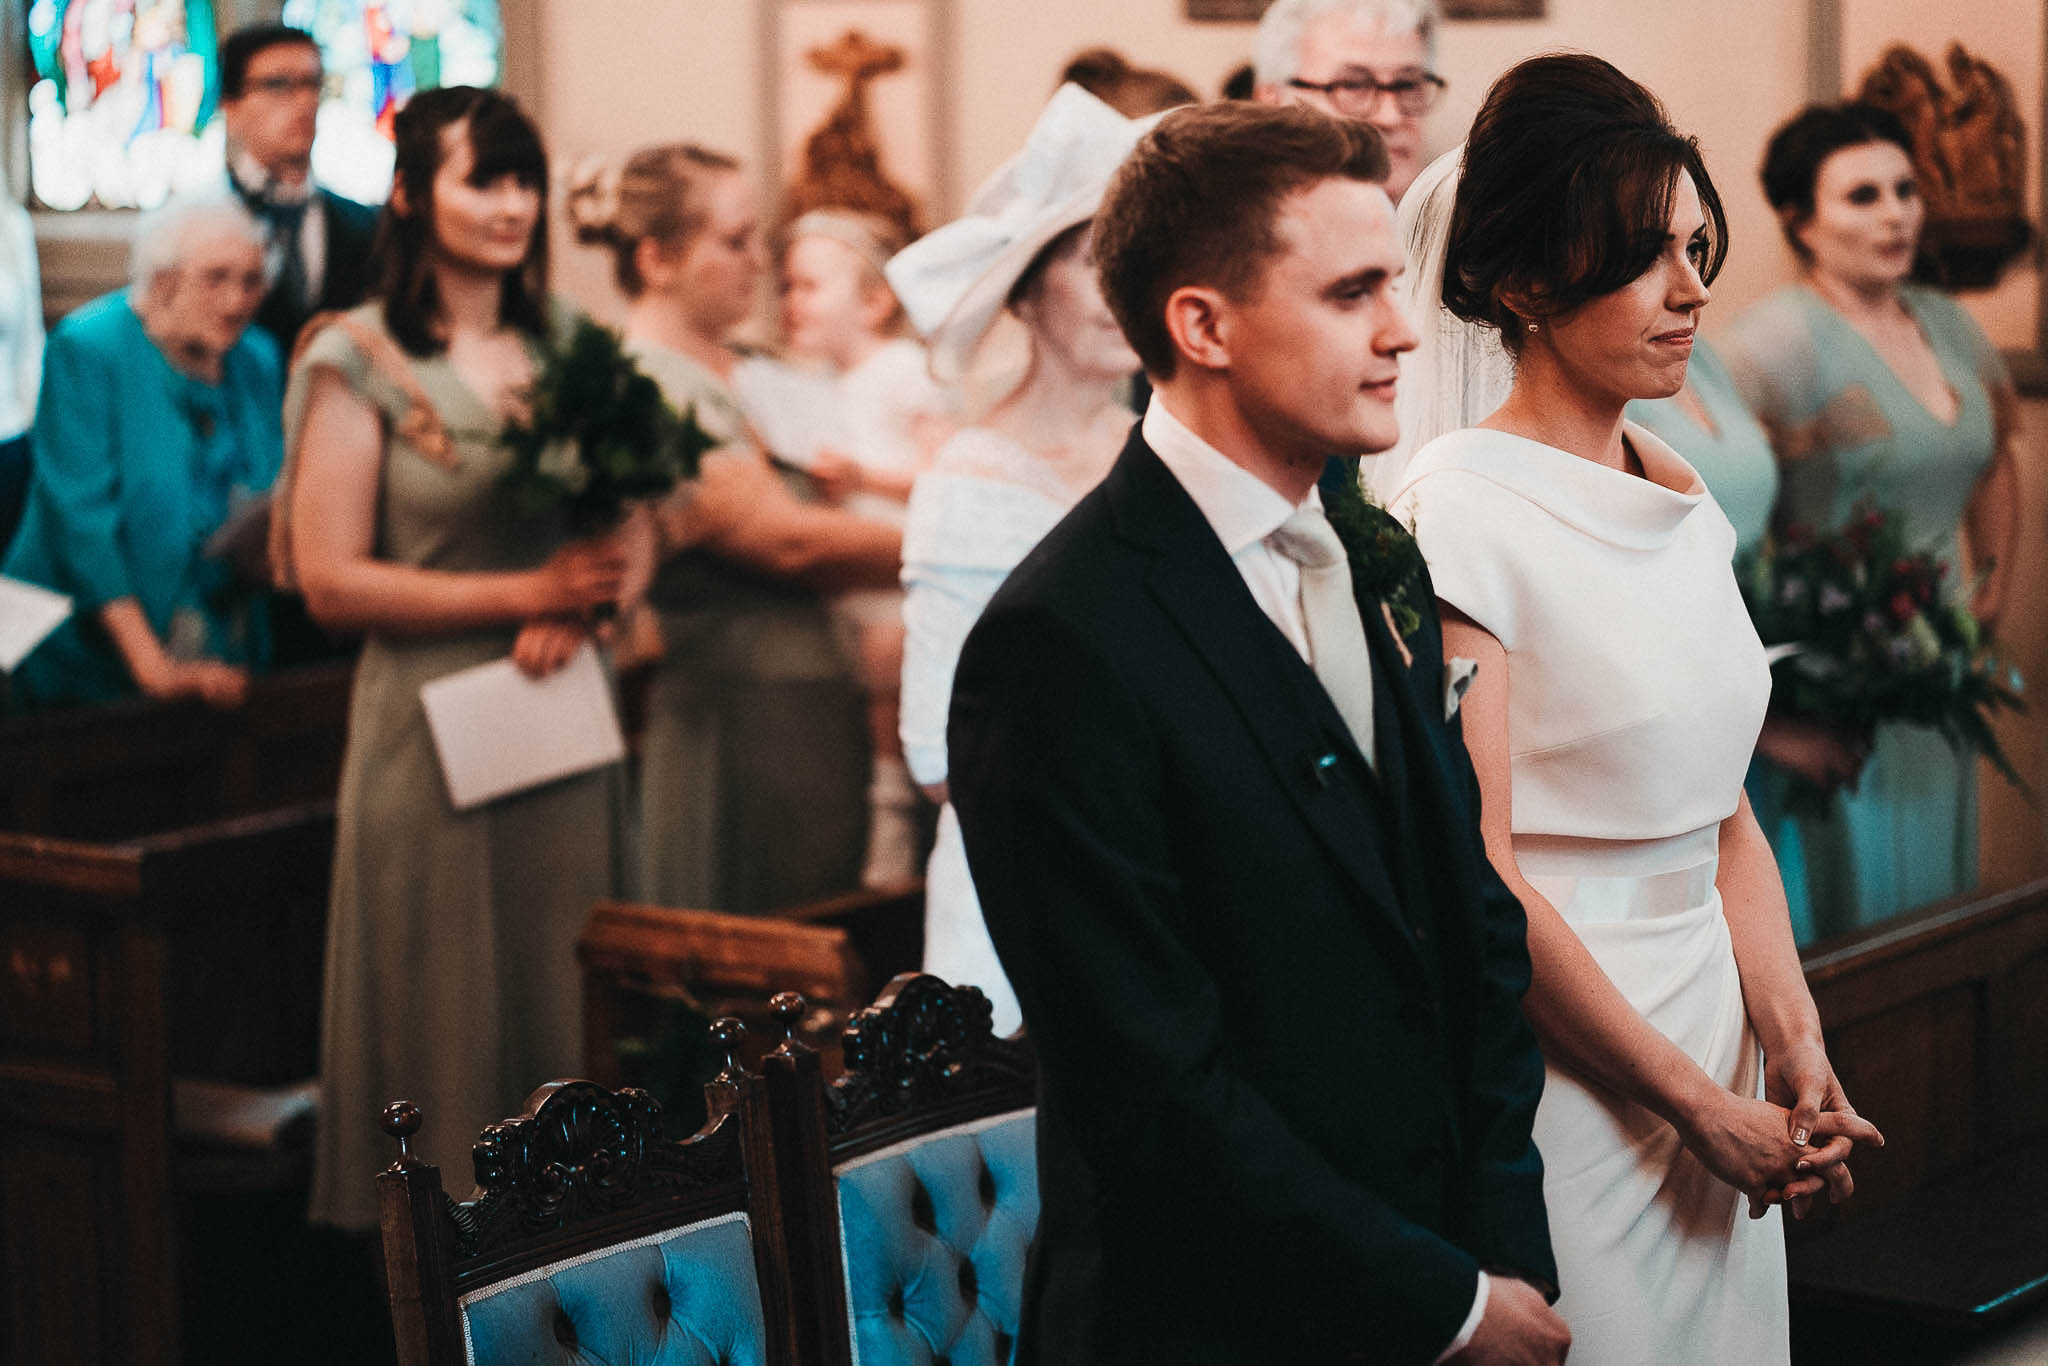 bride-and-groom-at-alter